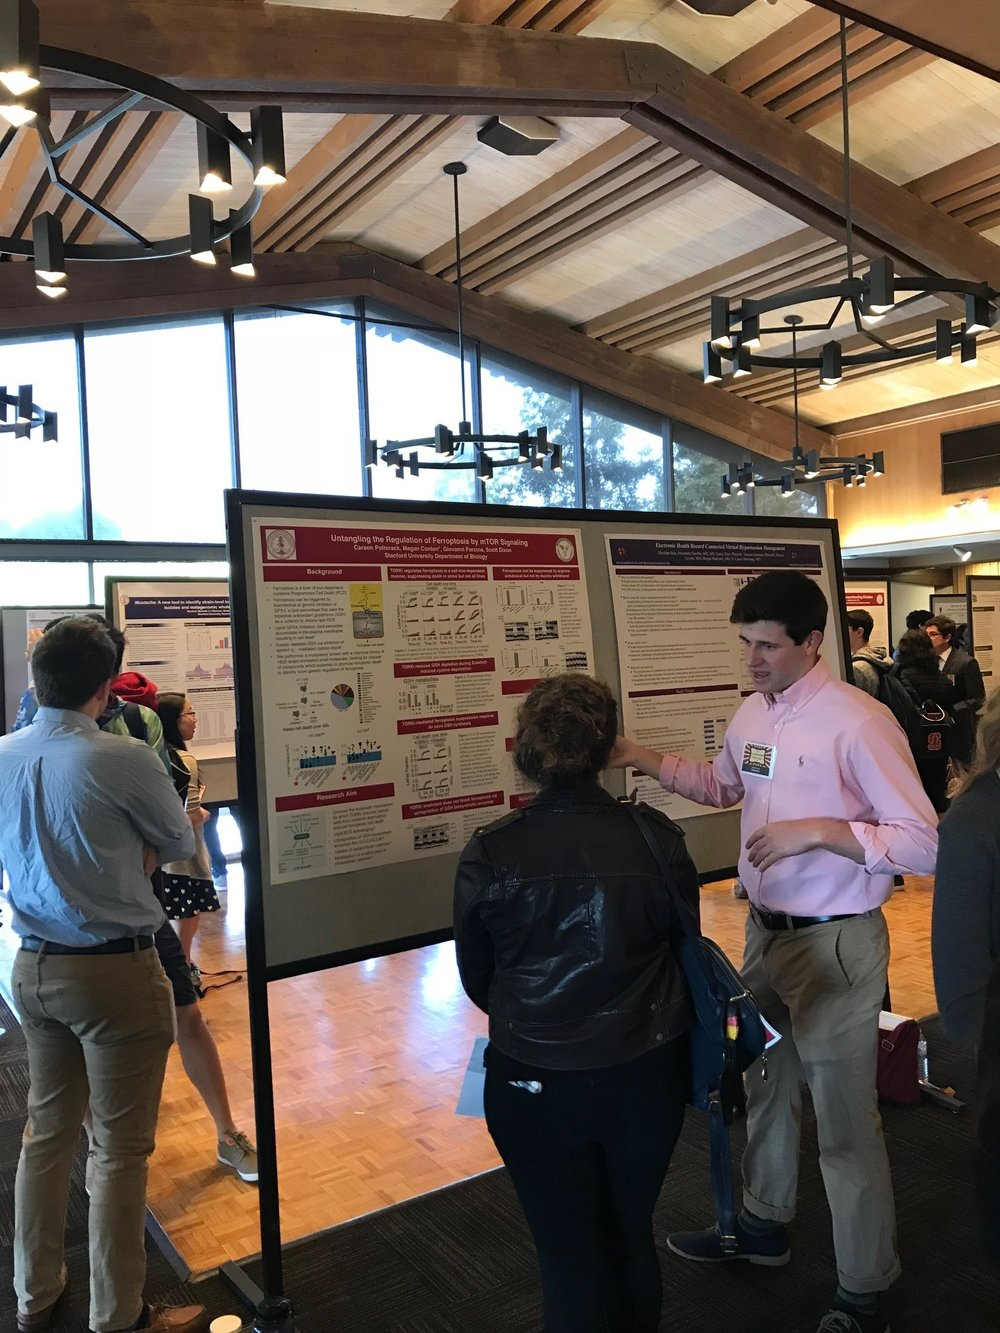 Carson enticing prospective students to Stanford with visions of participating in cutting edge cell death research - 28 Apr 18